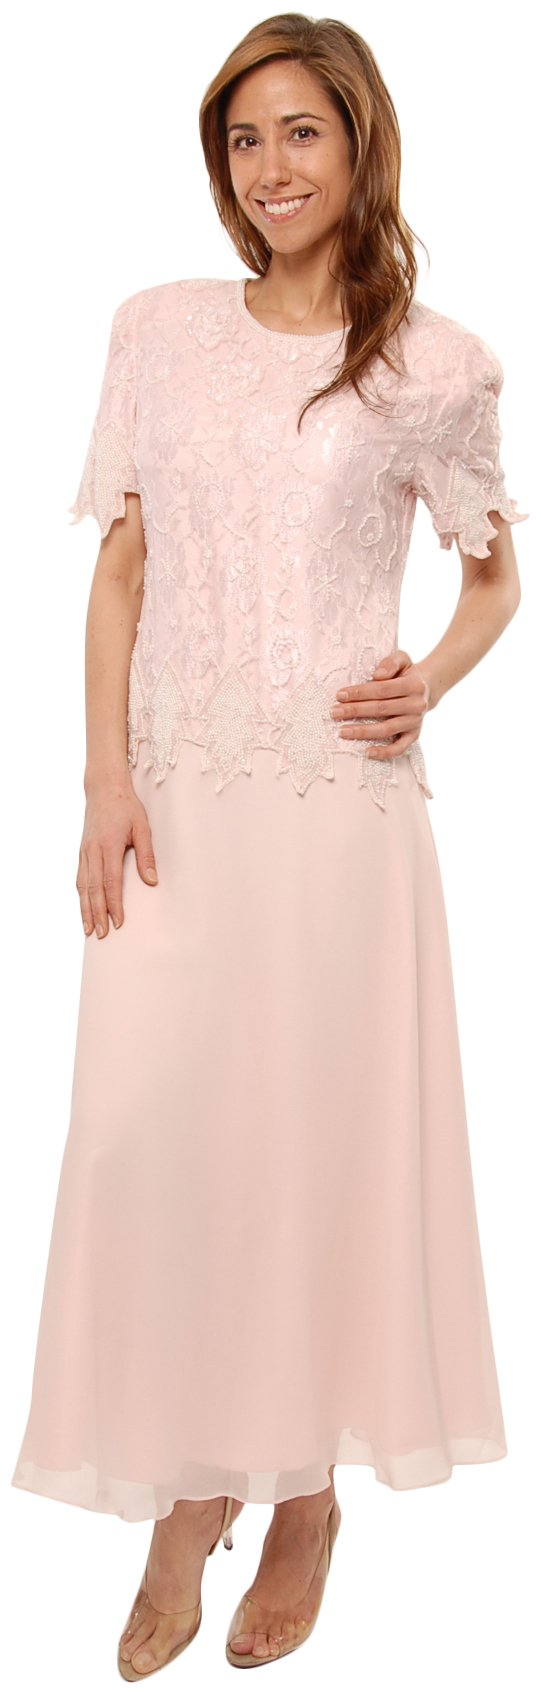 Available at Amazon: The Evening Store Tea Length Mother of The Bride Pink Plus & Regular Sizes